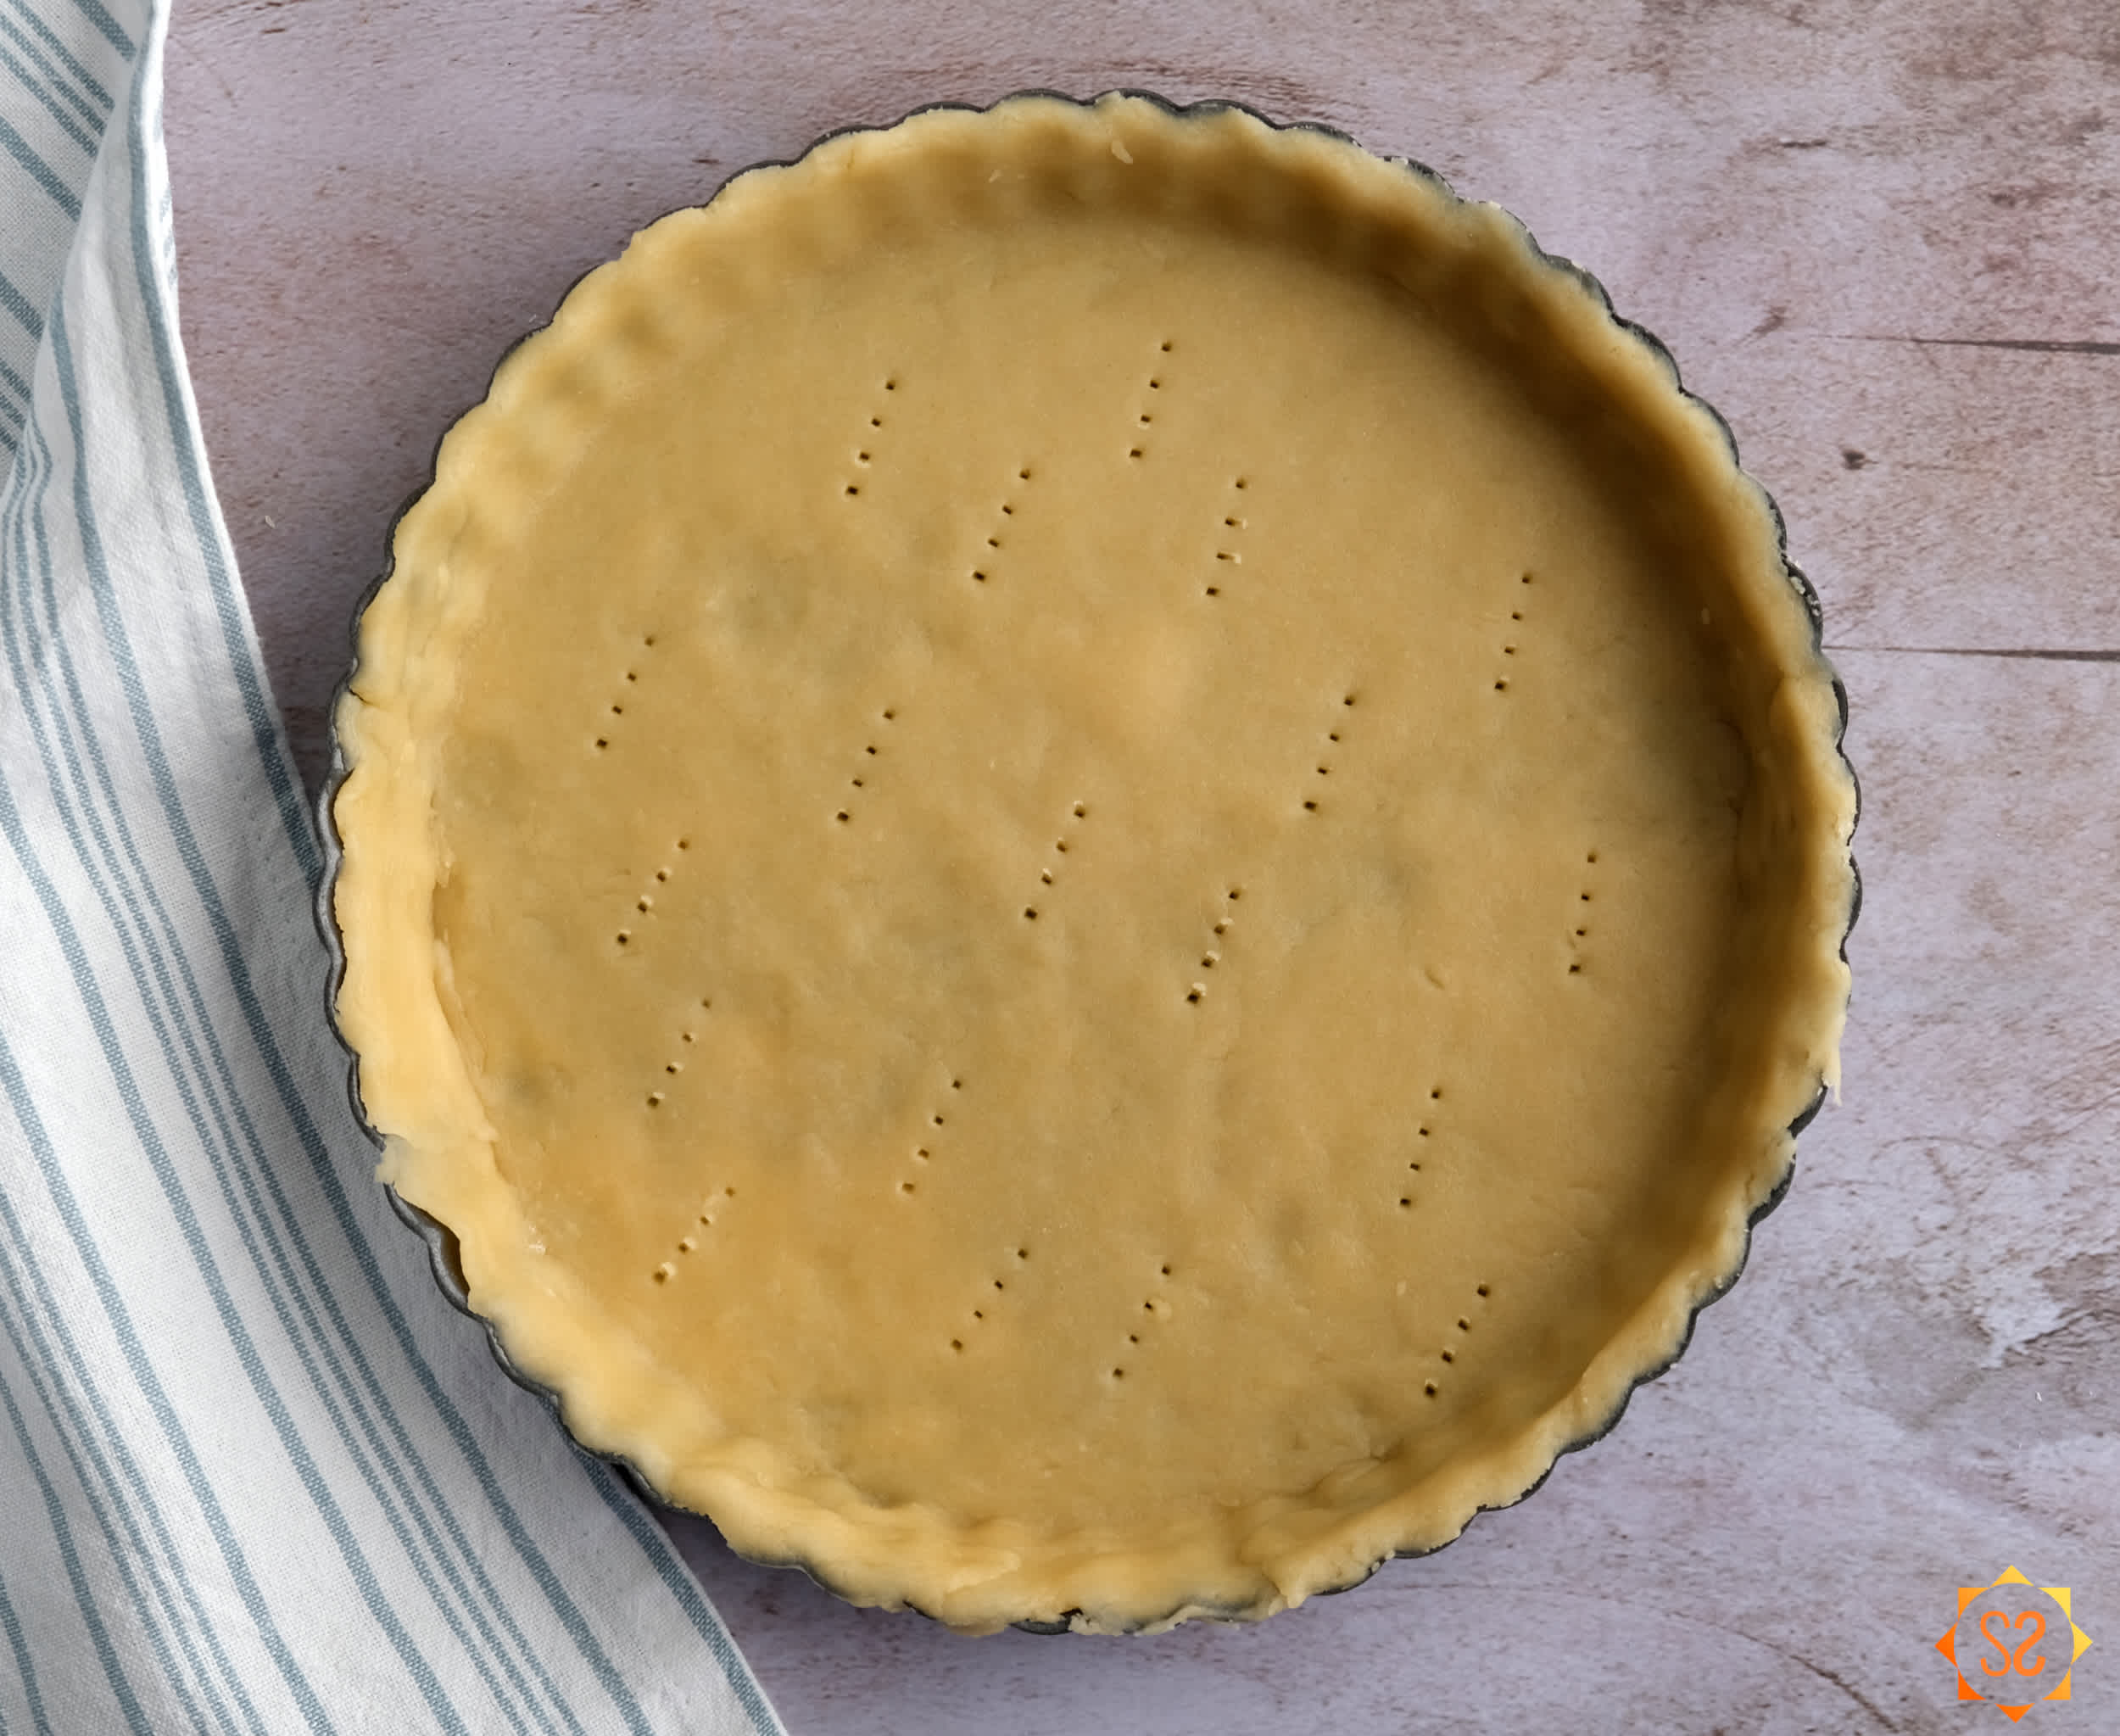 Tart crust in pan with fork holes